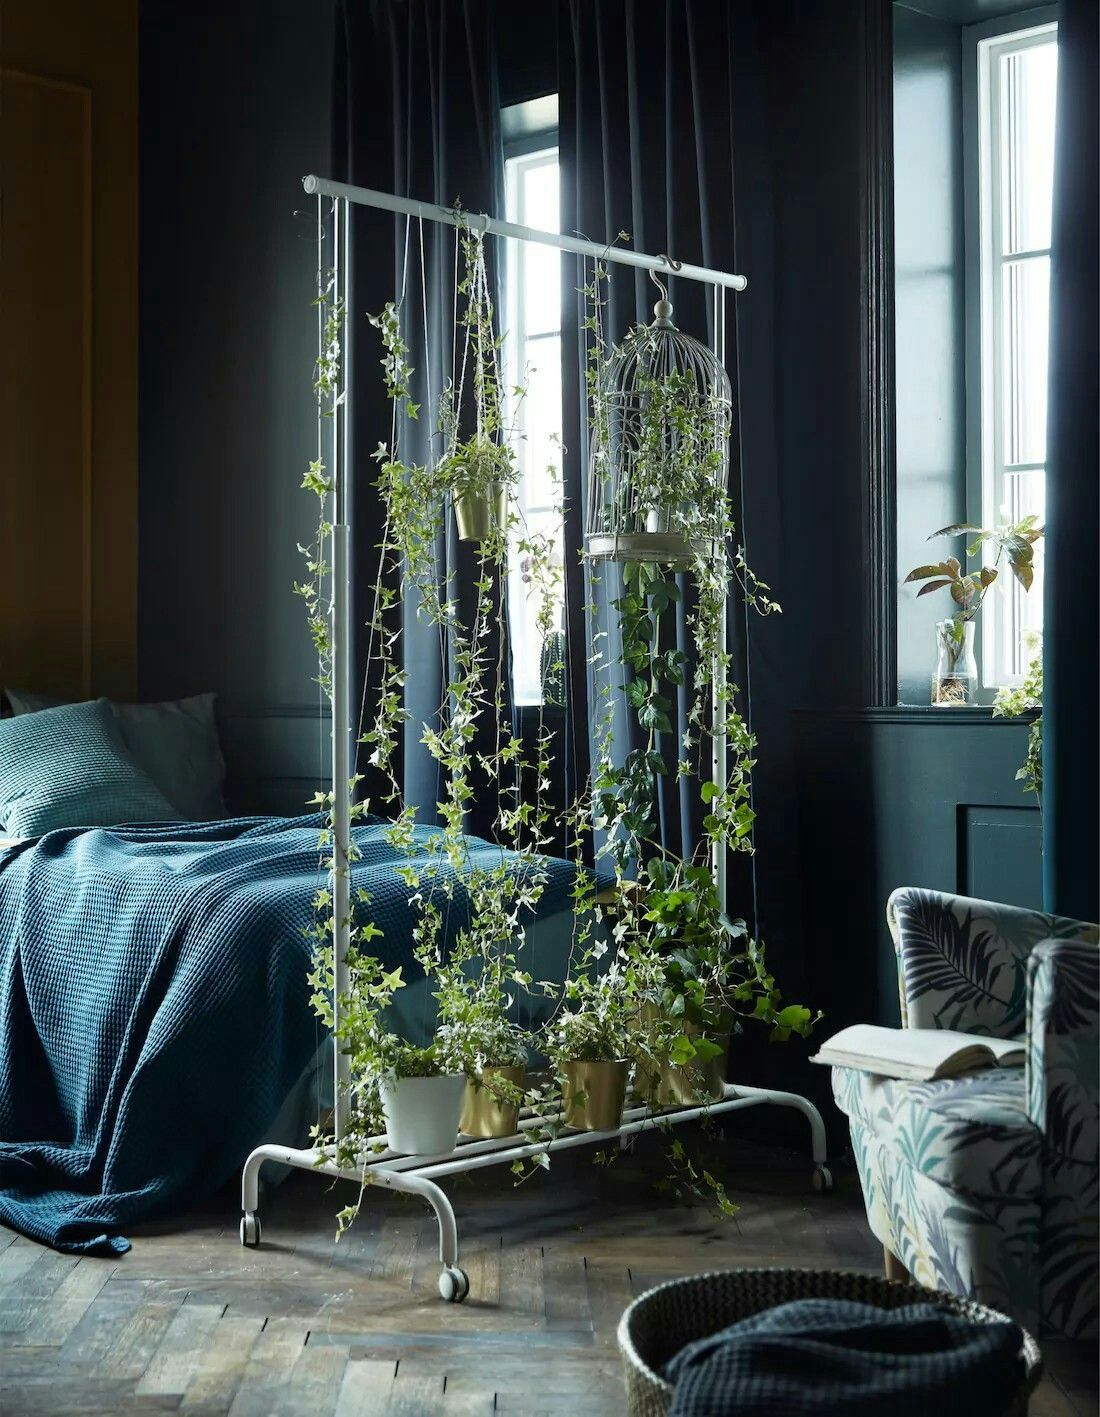 IKEA Plant Hacks Your Green Friends Will Love images